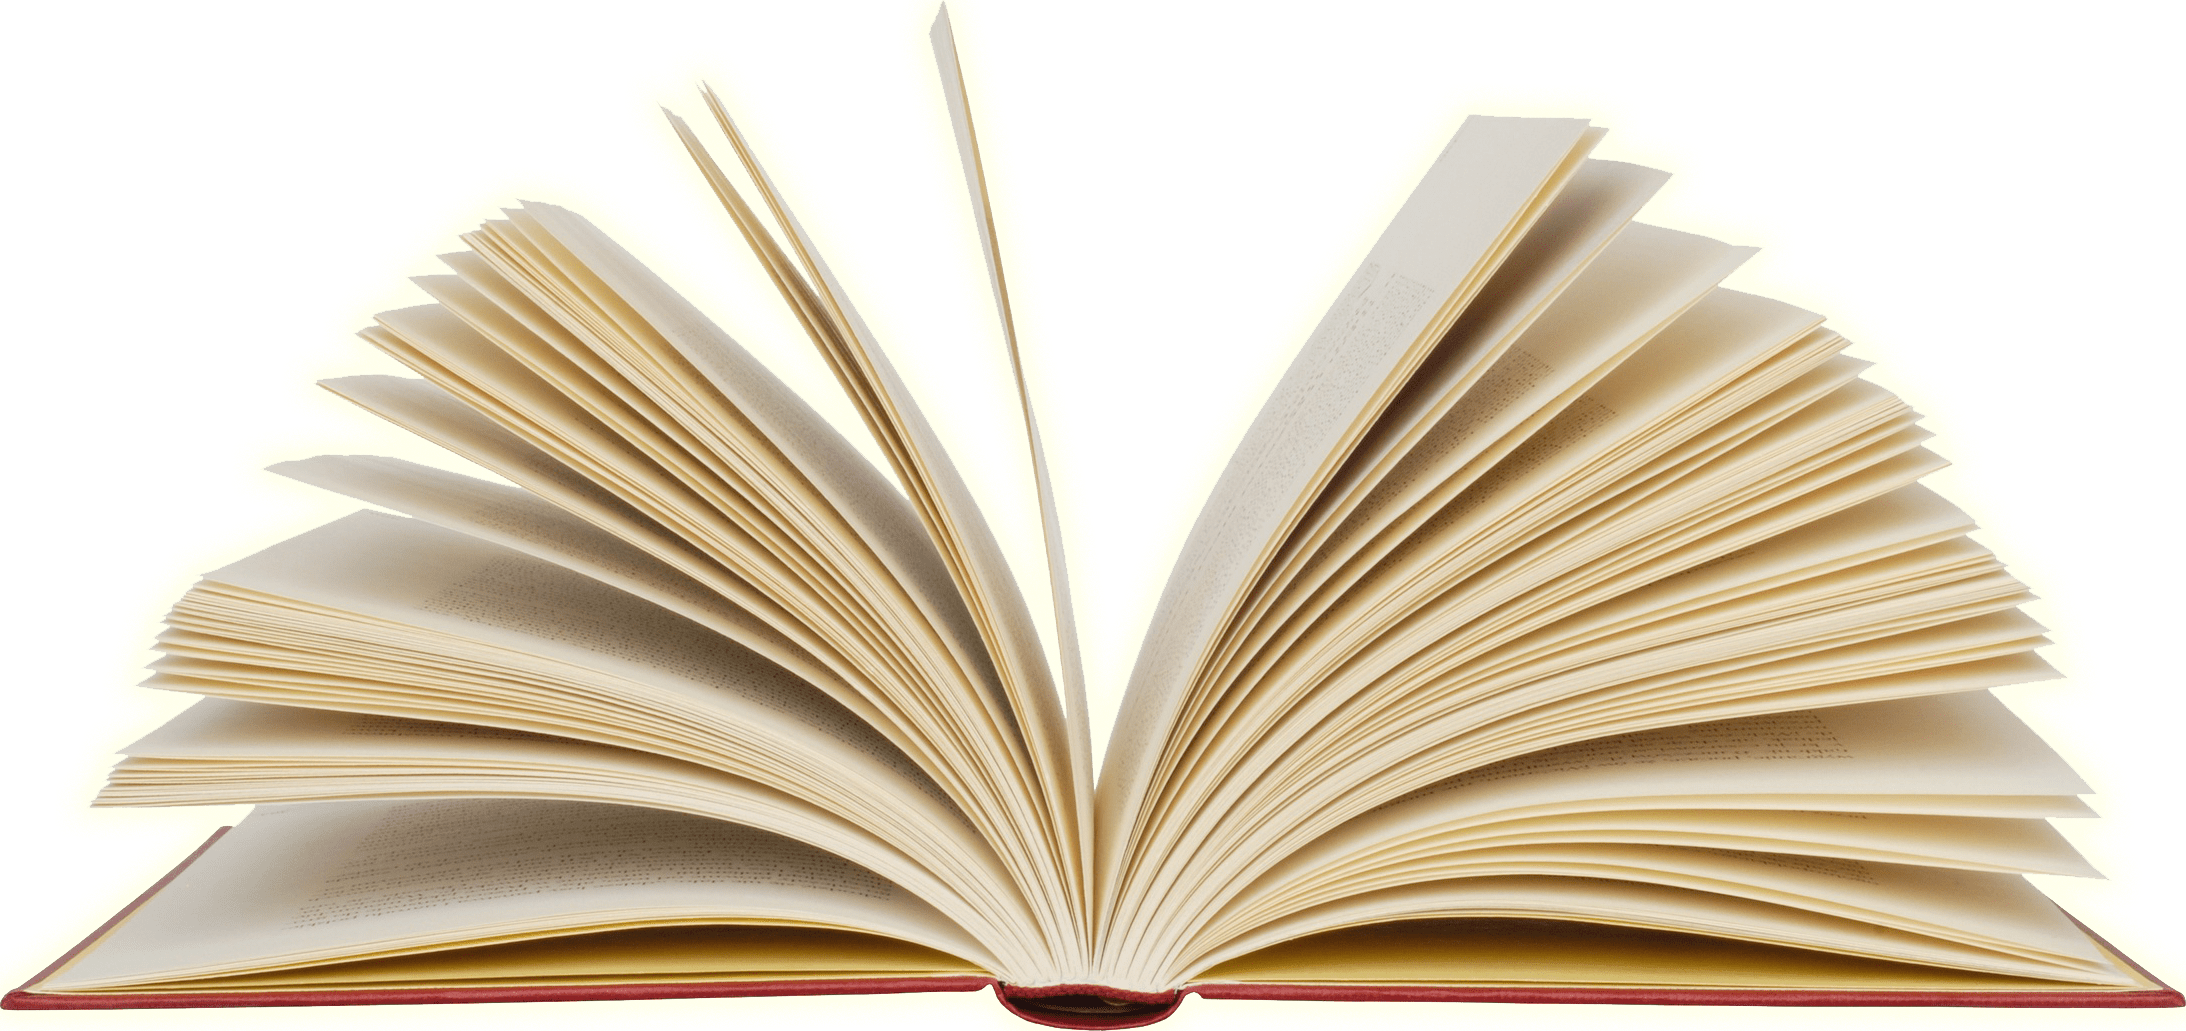 Book Hd Png Transparent Book Hdpng Images Pluspng